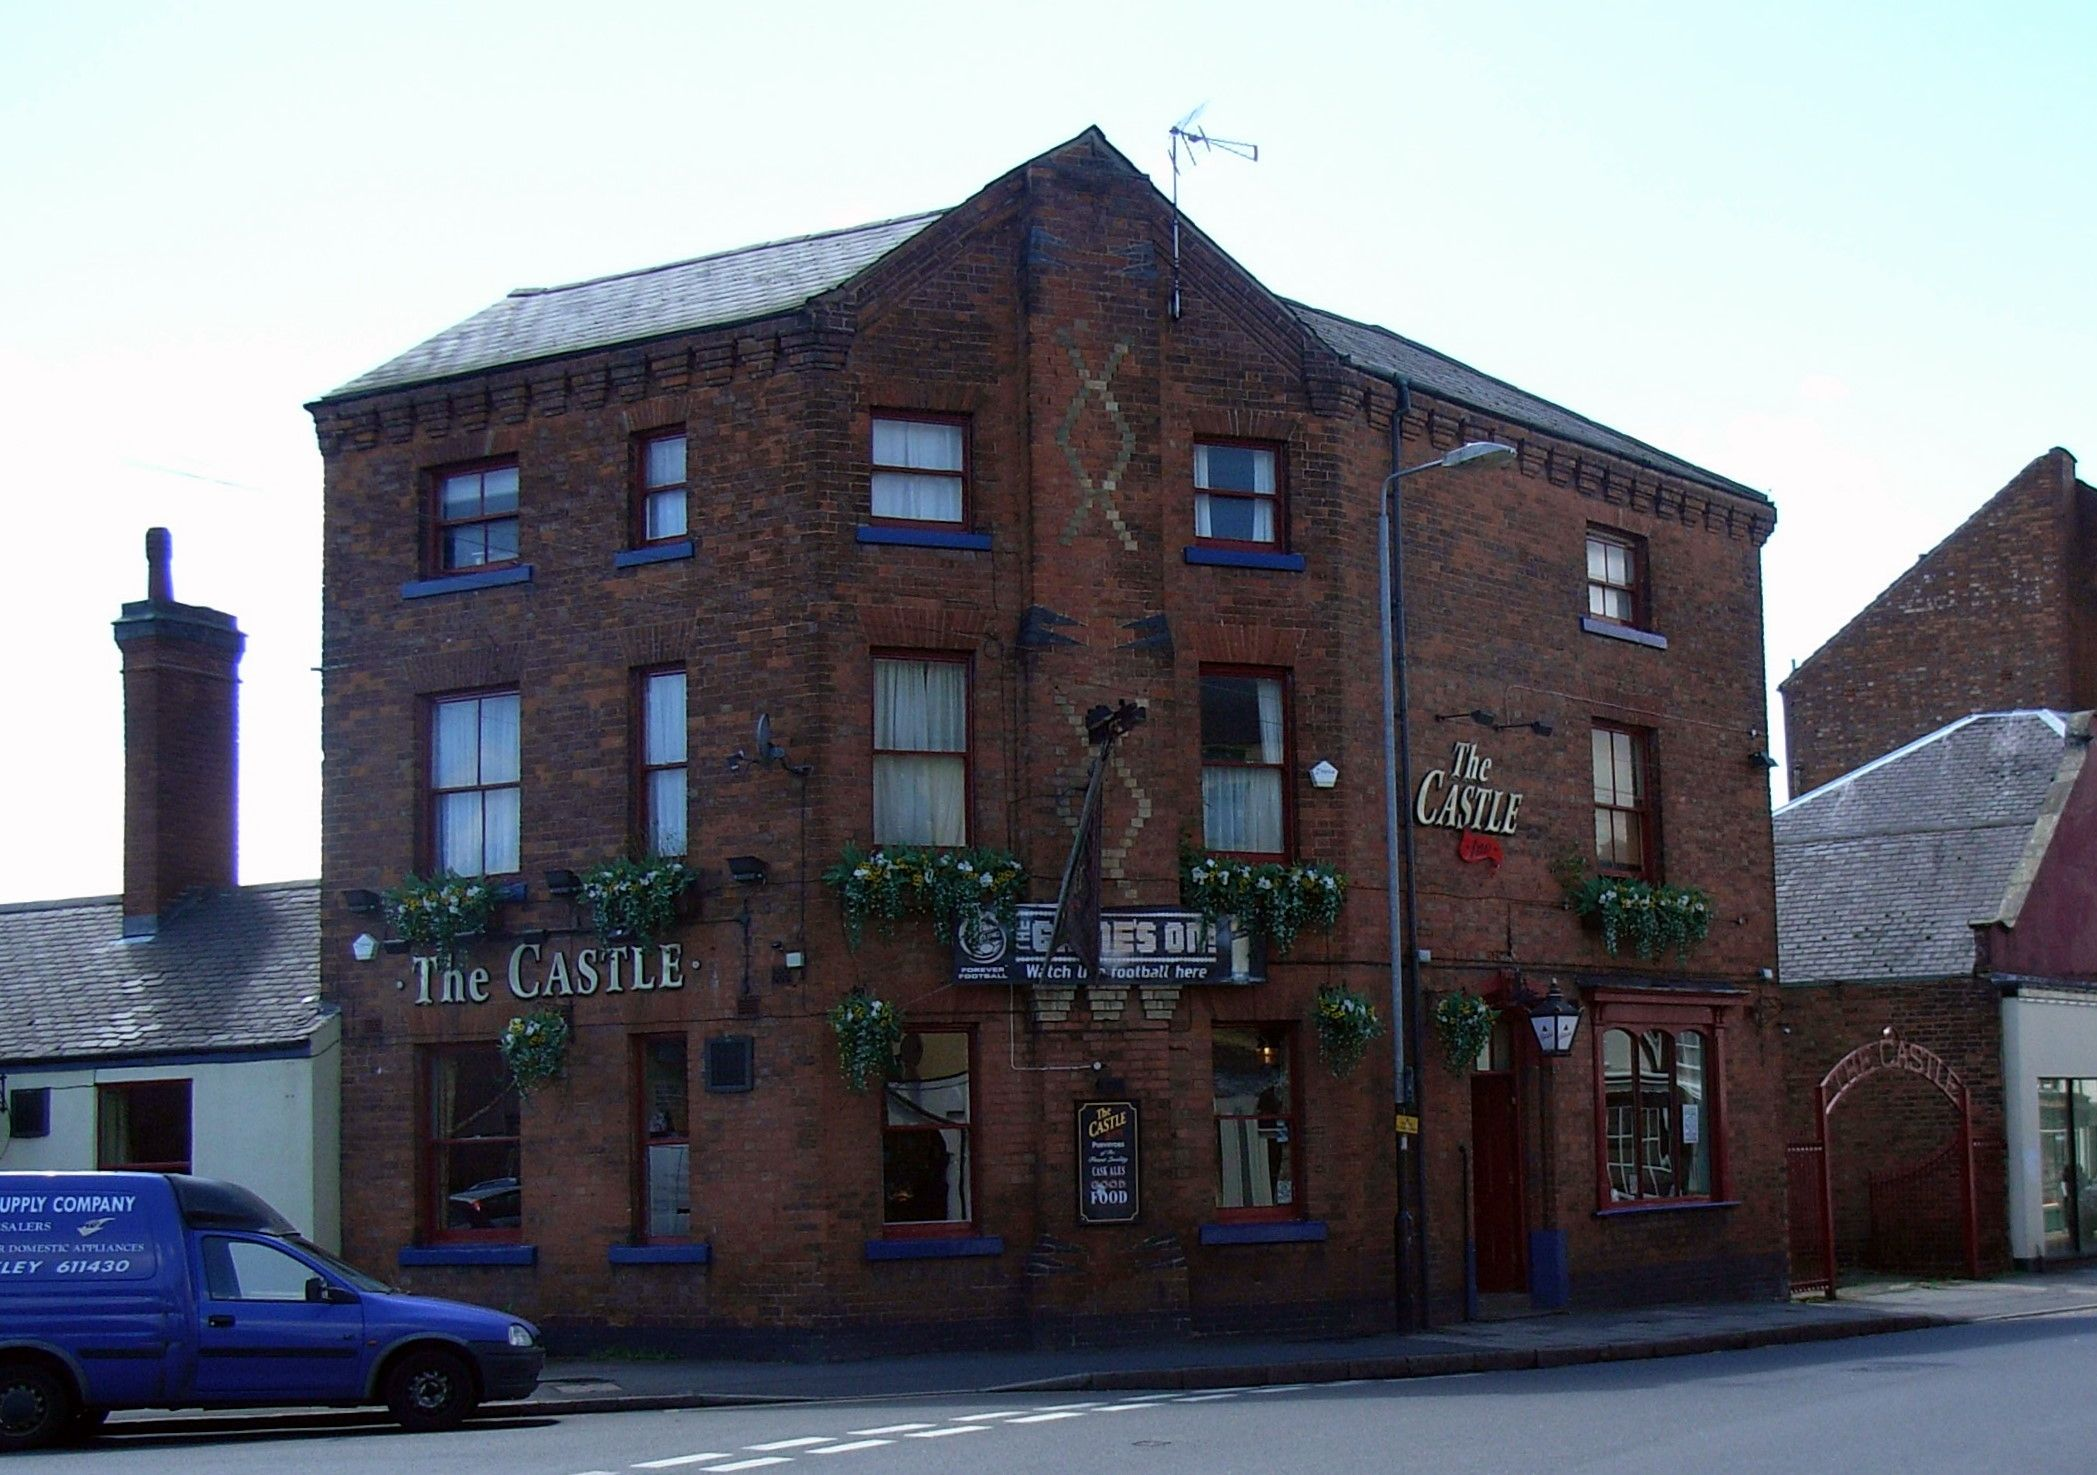 The Castle, a once thriving and very popular Hinckley public house, long since closed down. Now being converted to living accommodation.